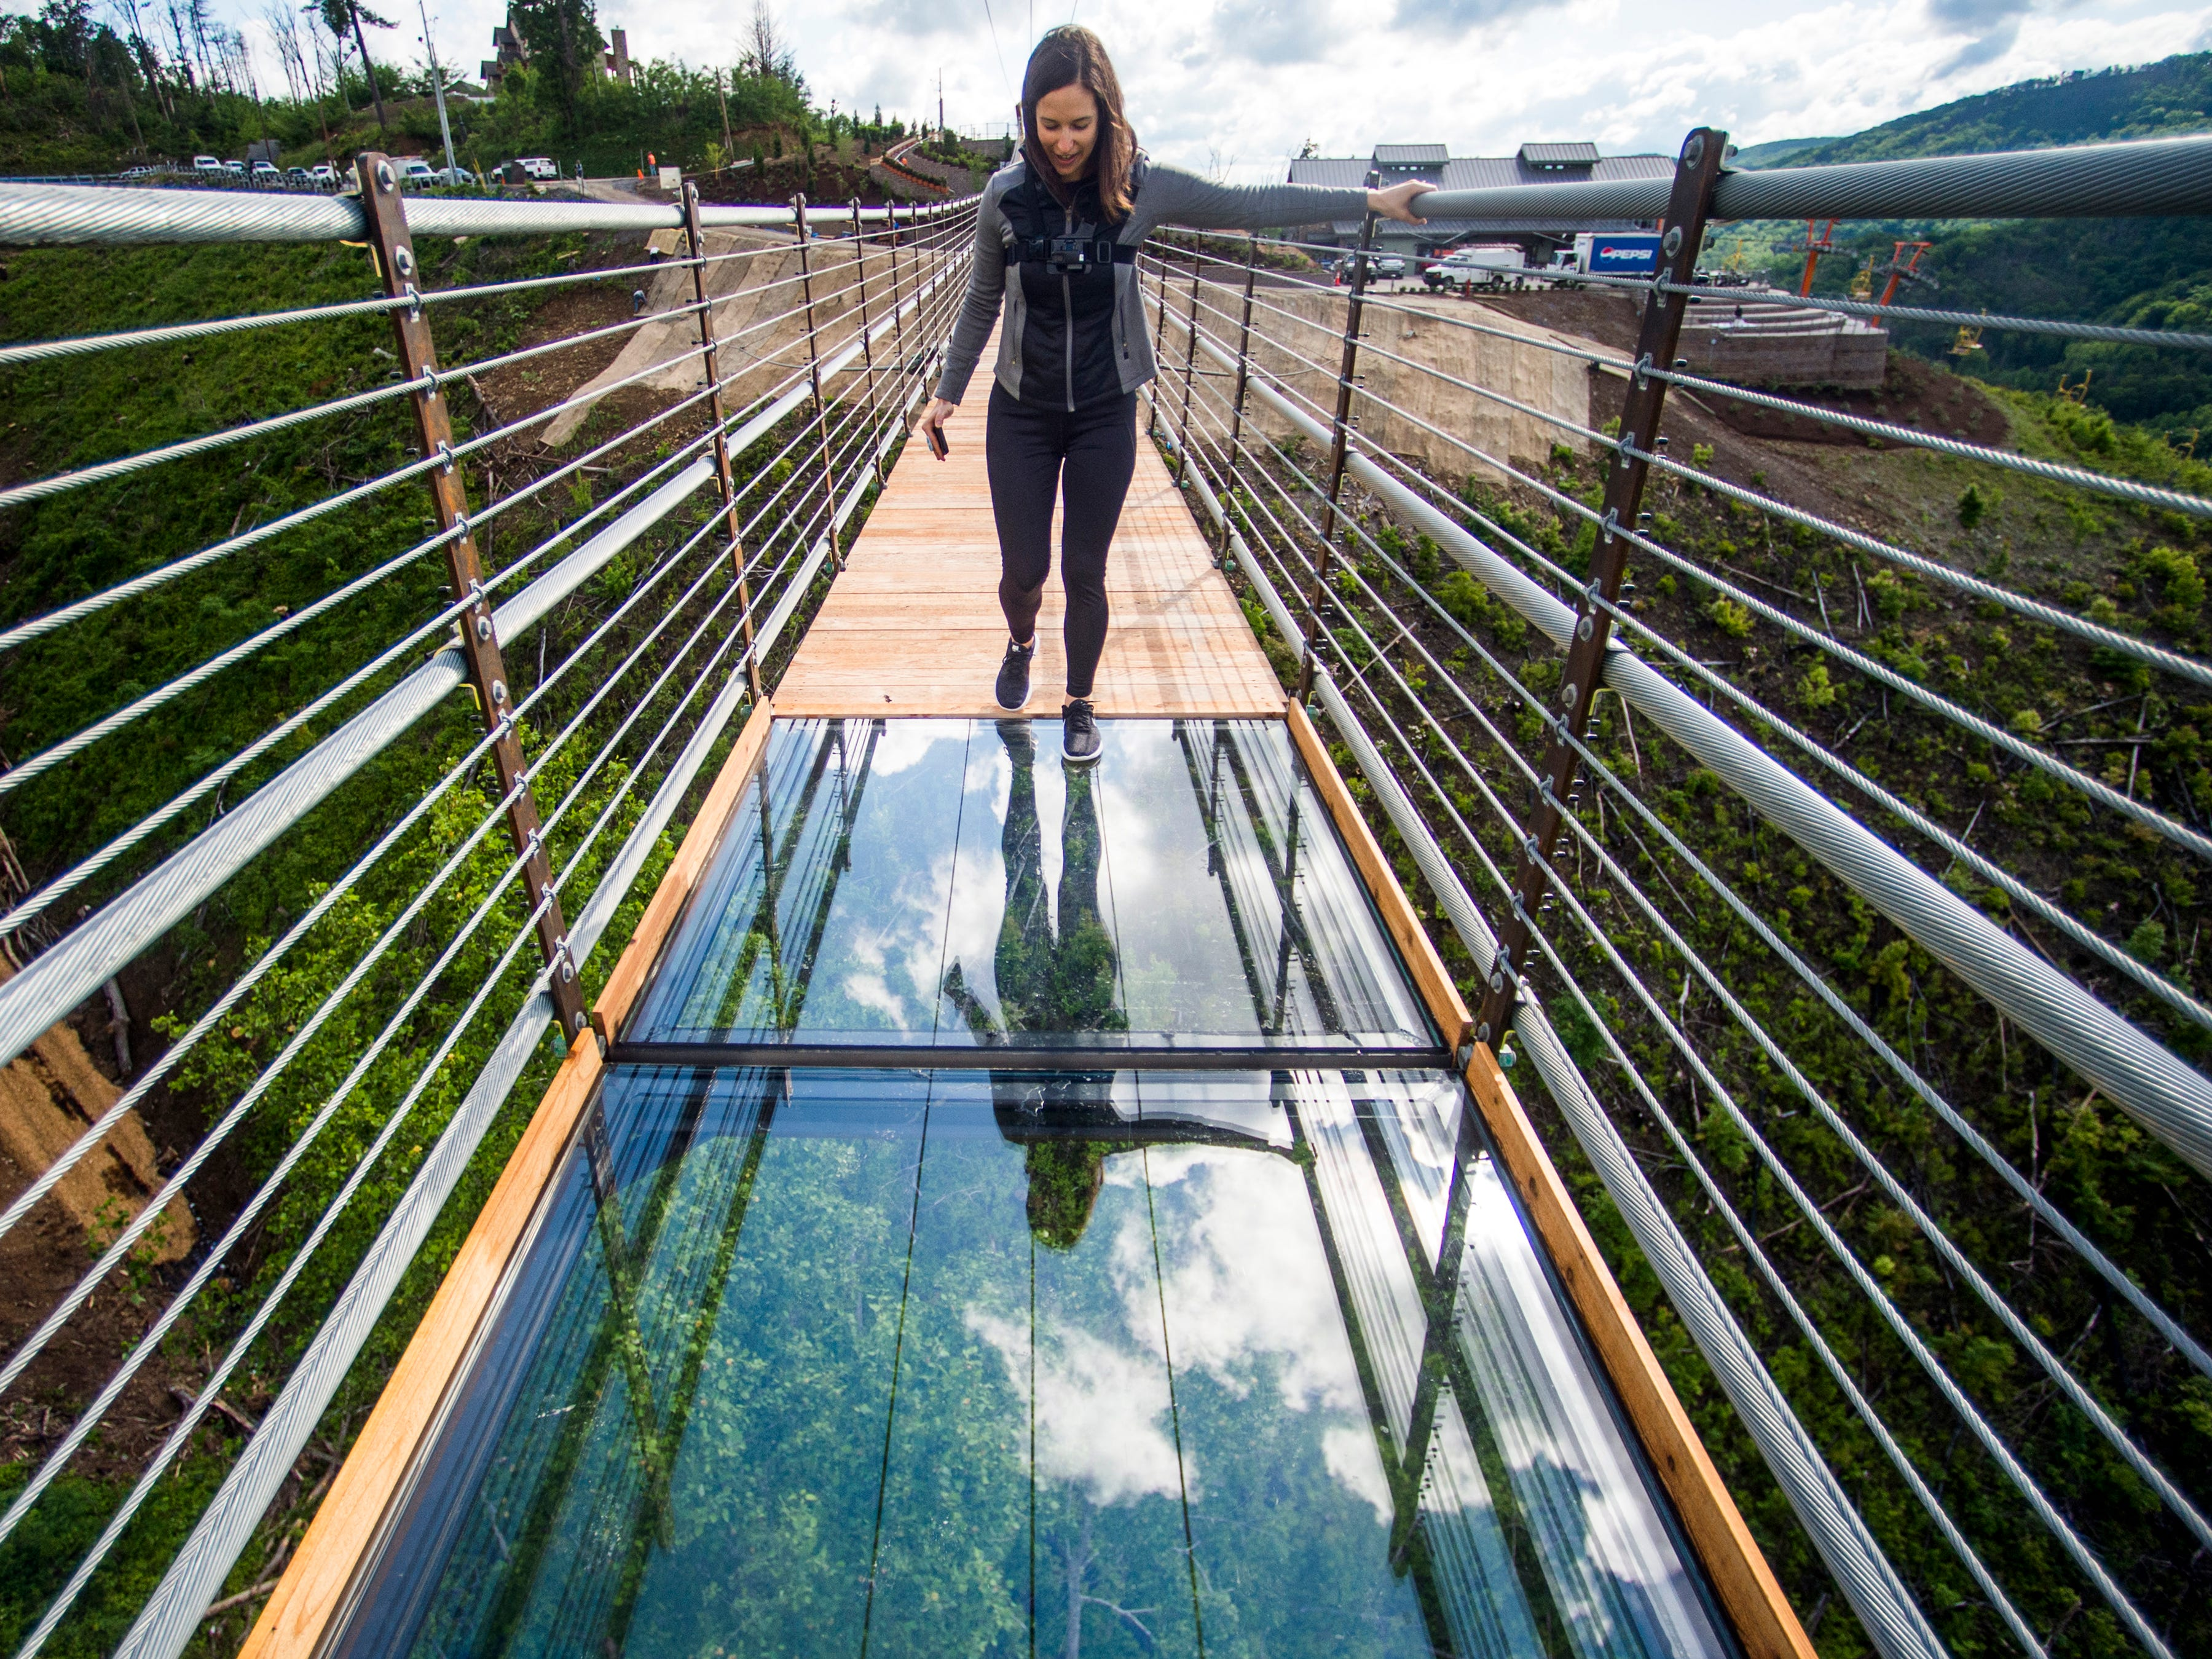 Knoxville News Sentinel reporter Brenna McDermott takes a step onto the glass-floor panels in the middle of the Gatlinburg SkyBridge, North America's longest pedestrian suspension bridge, on Tuesday, May 14, 2019.